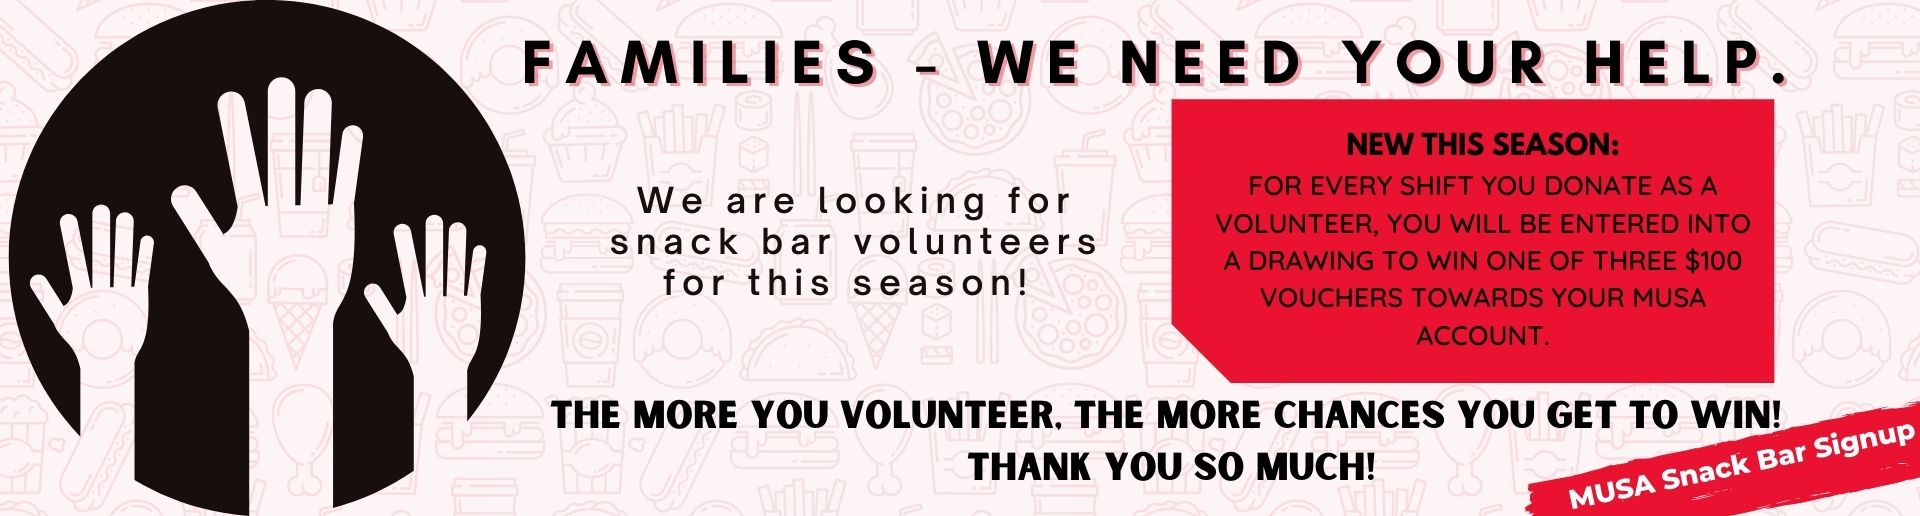 Snack Bar Volunteers Needed! Change to win a $100 Voucher Click for the link!